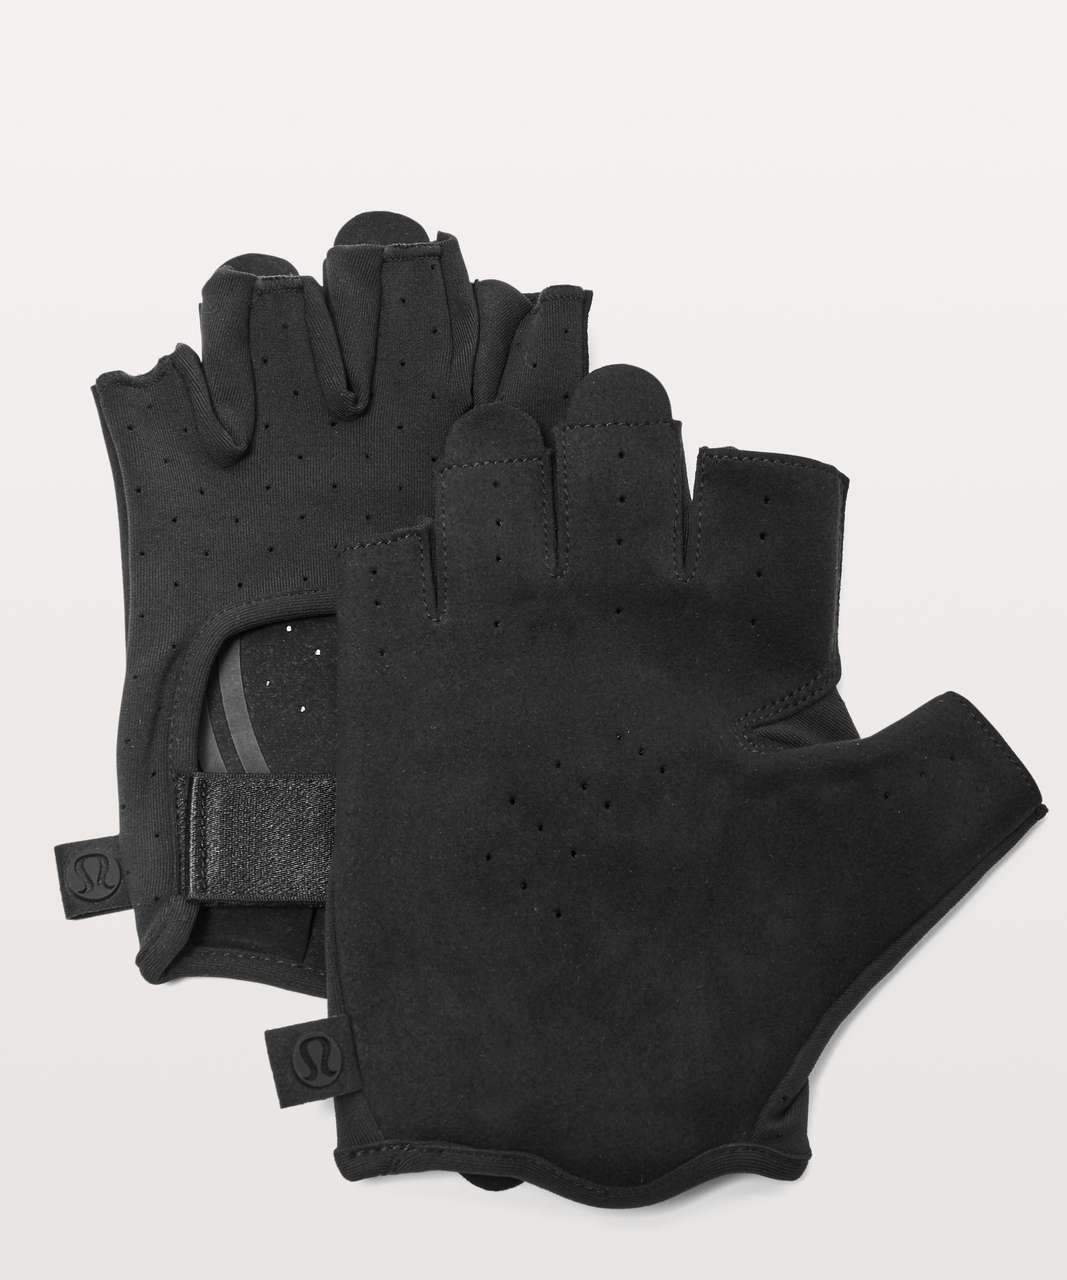 Lululemon Uplift Training Gloves - Black (First Release)